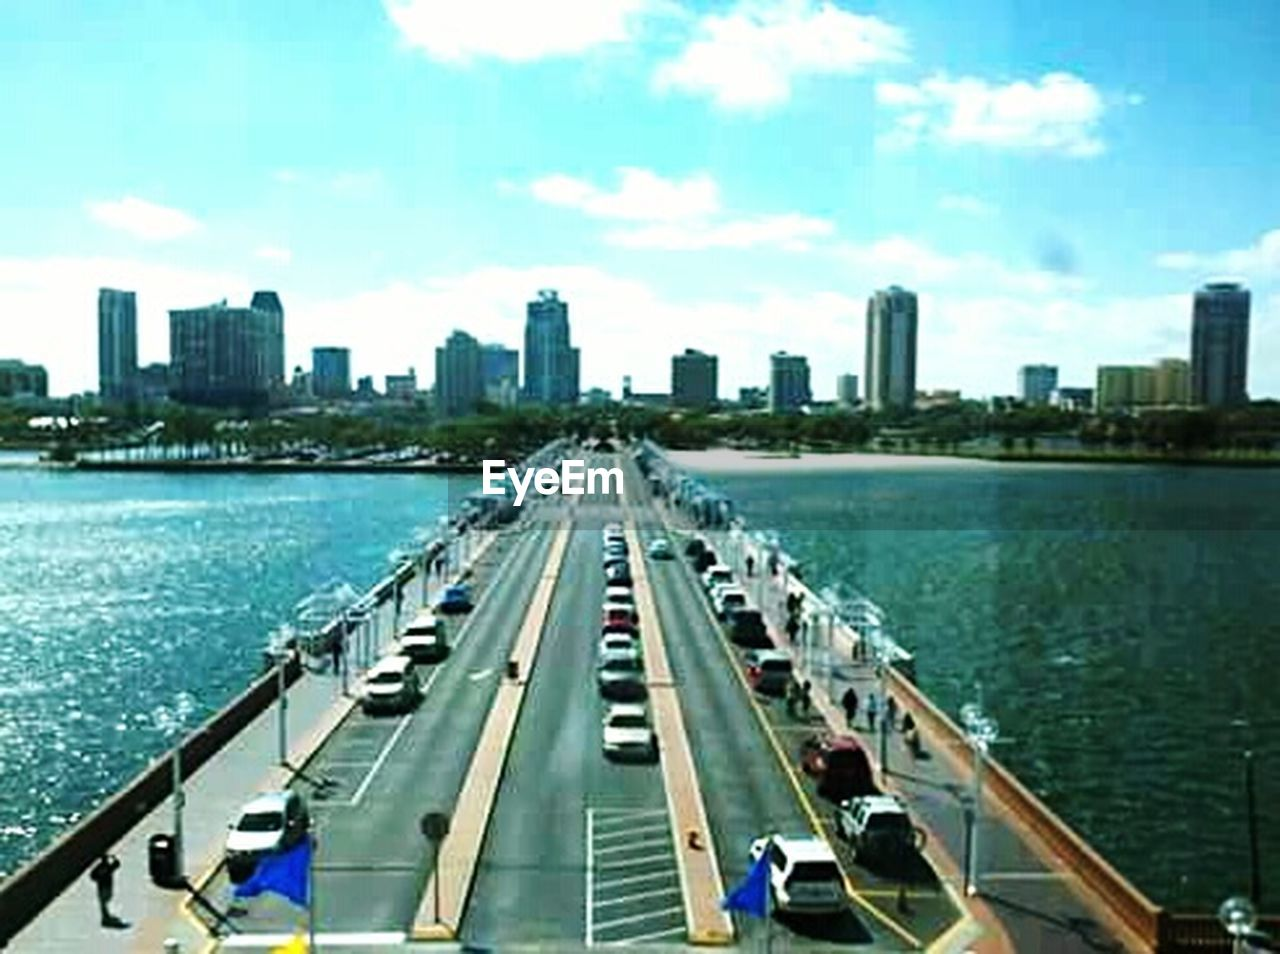 city, skyscraper, architecture, built structure, city life, urban skyline, modern, building exterior, day, cityscape, bridge - man made structure, river, downtown district, transportation, outdoors, nautical vessel, sky, travel destinations, water, people, adults only, adult